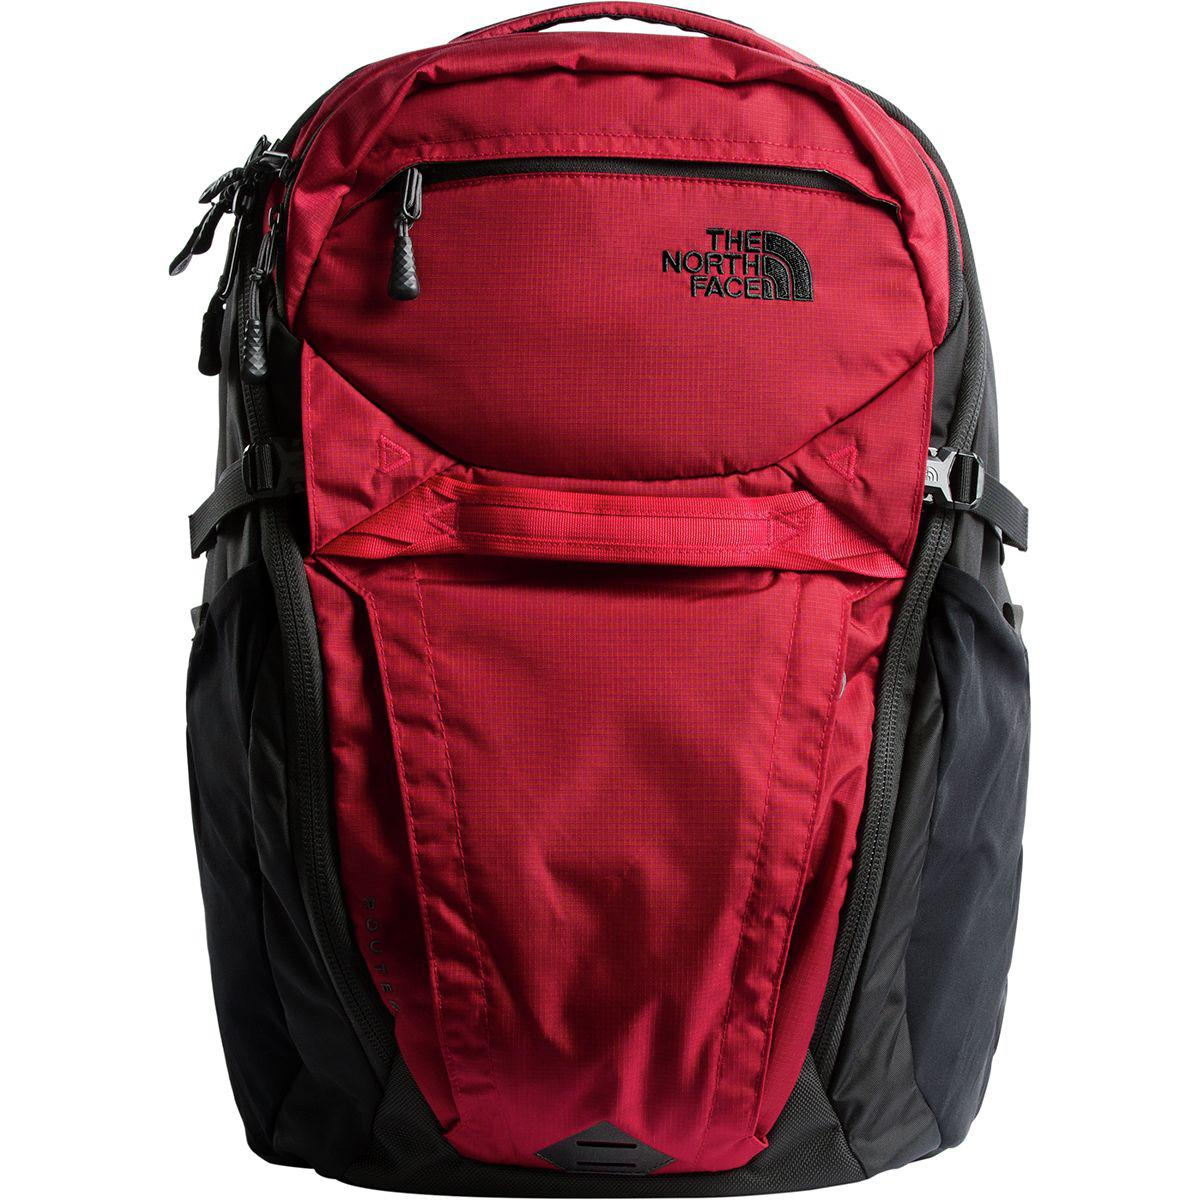 46ad0fcec The North Face Red Router 40l Backpack for men